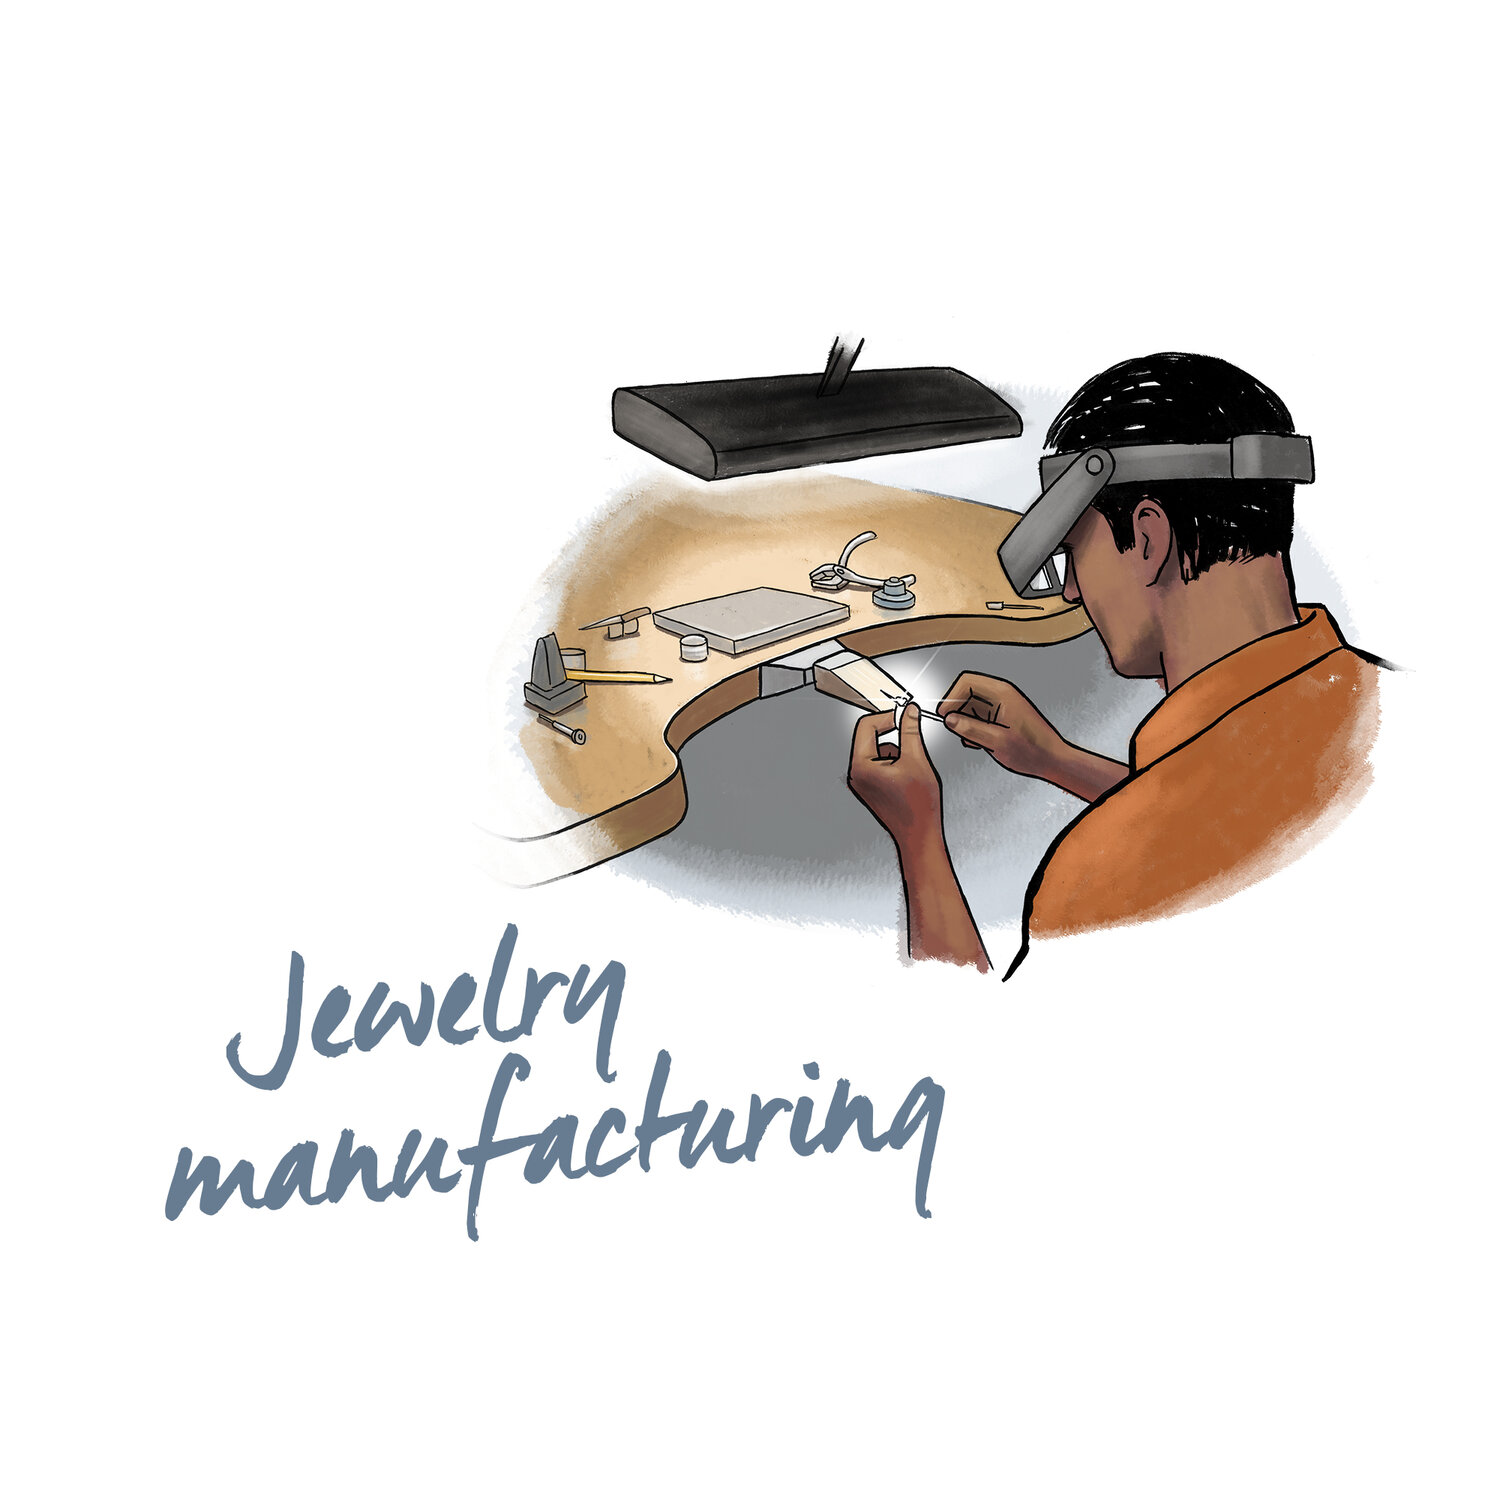 SEVENTH STEP - DiamondByway jewels have been manufactured by RJC certified entities, with RJC CoC gold and finished in Barcelona.